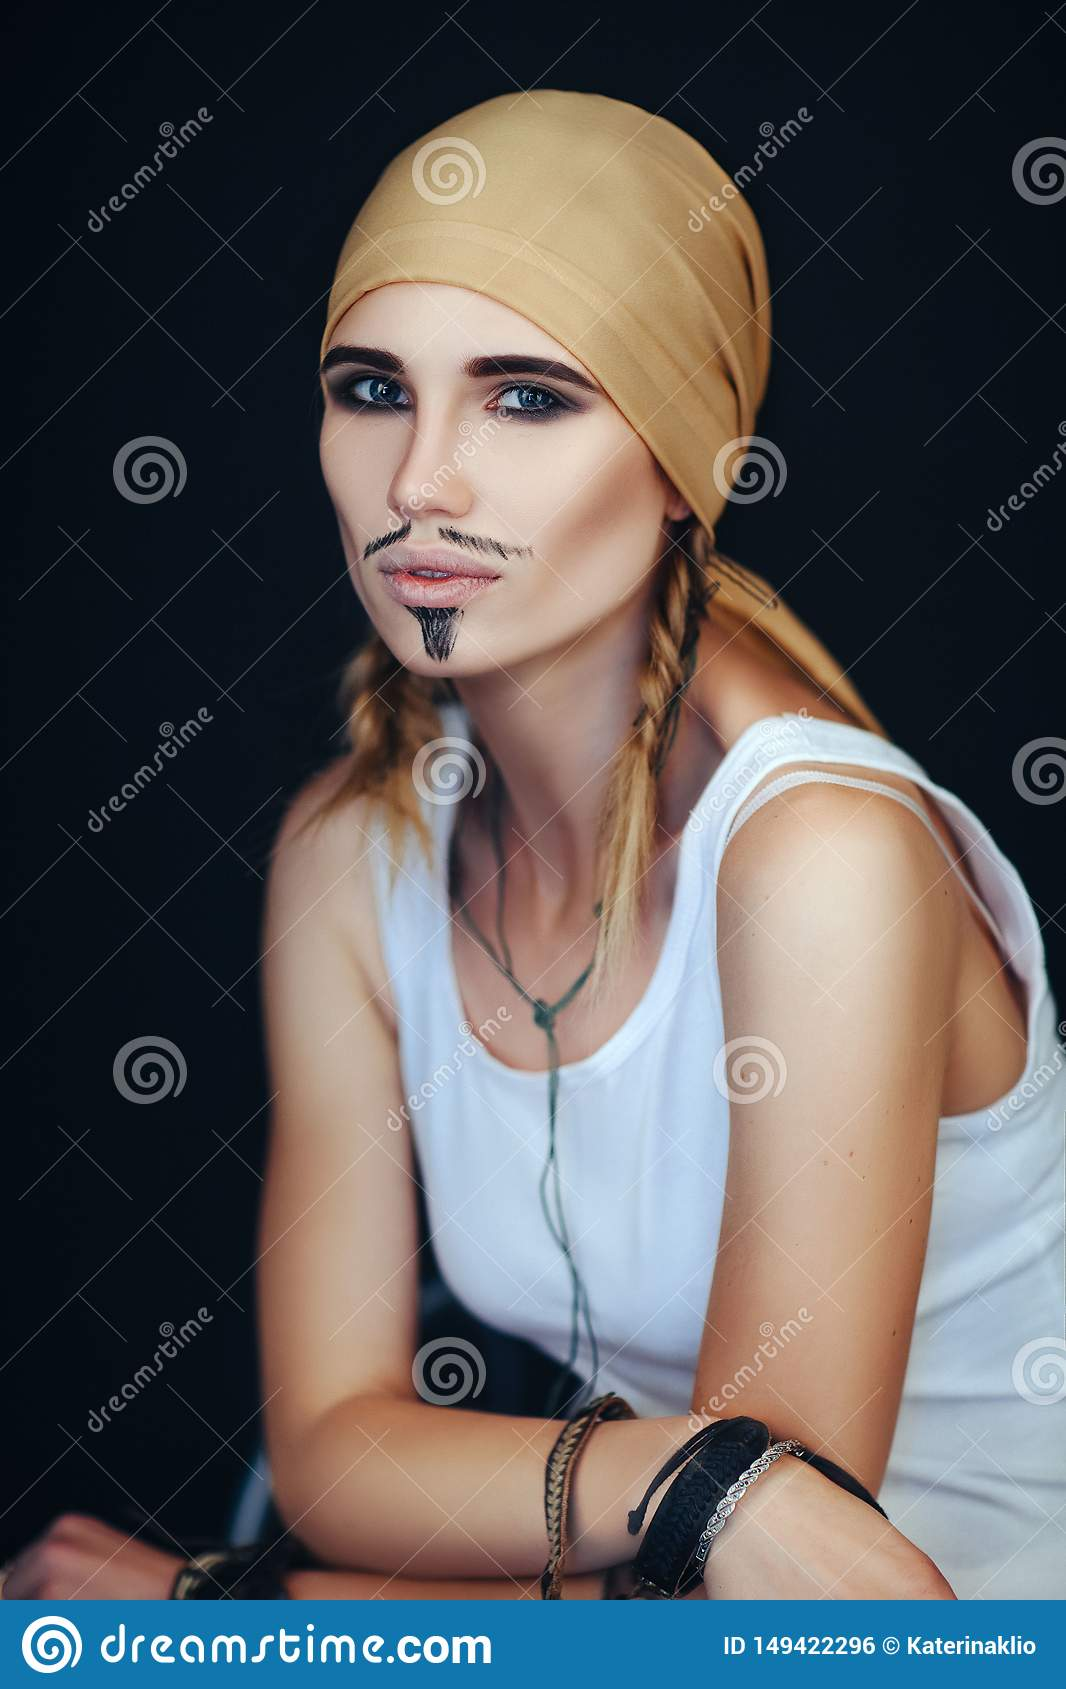 Man`s pirate style for a woman